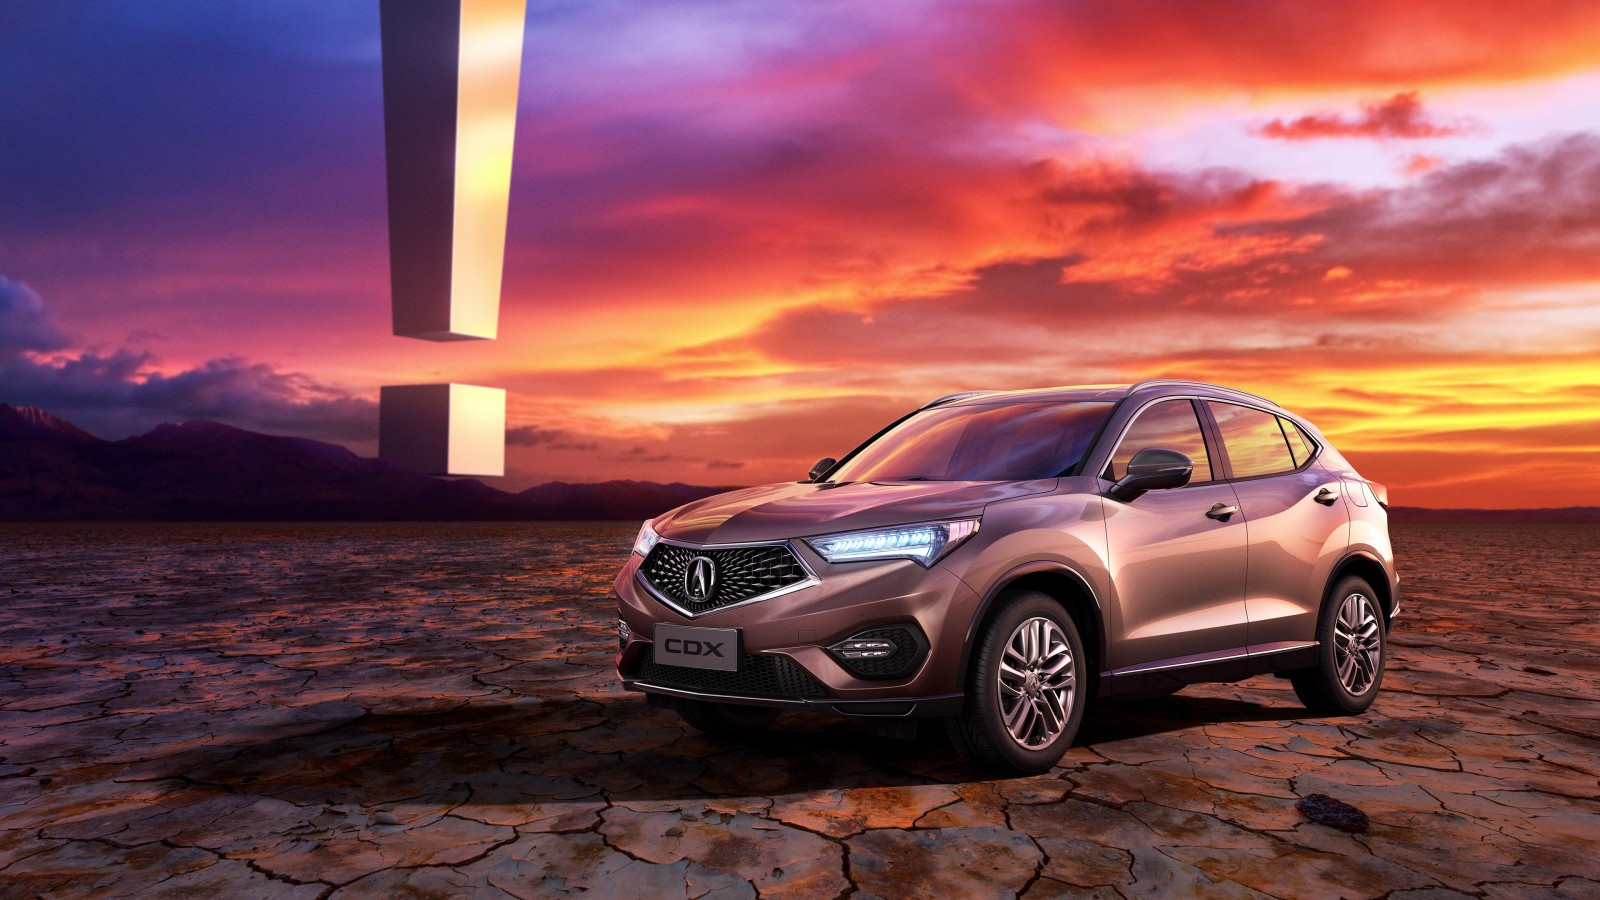 Acura CDX 2017 Wallpaper HD Car Wallpapers ID 6529